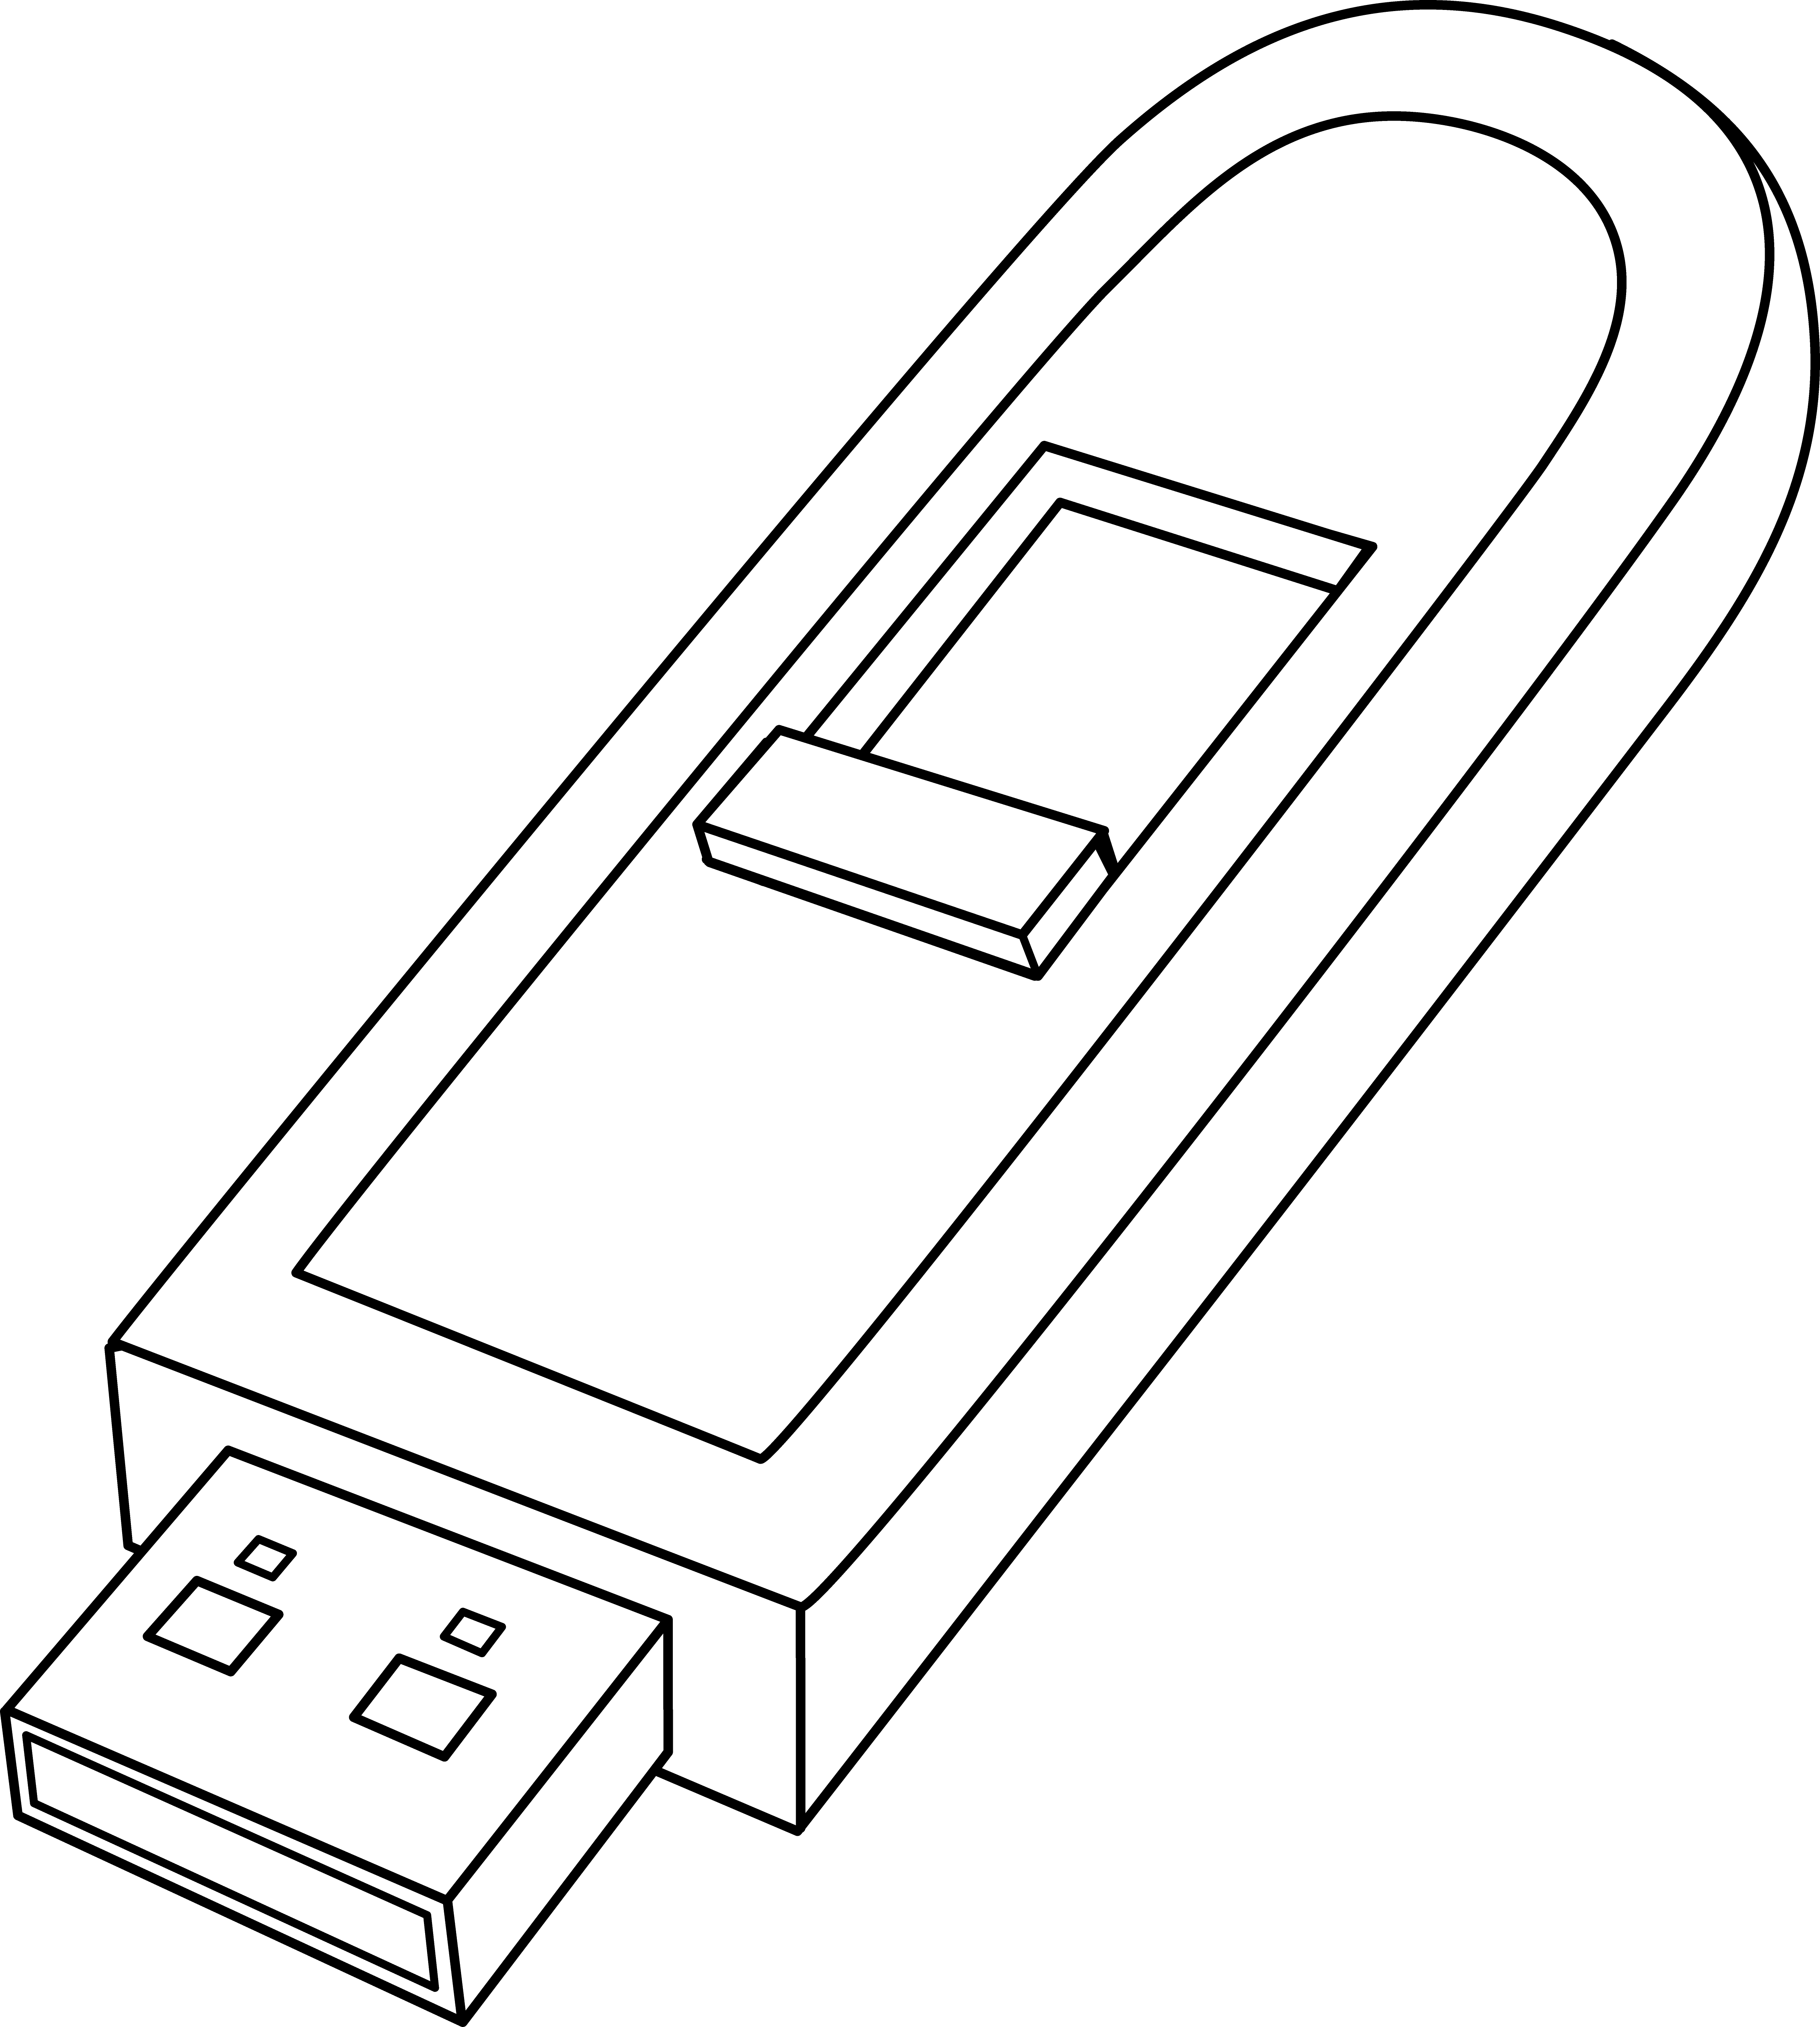 Flash driver clipart - Clipground